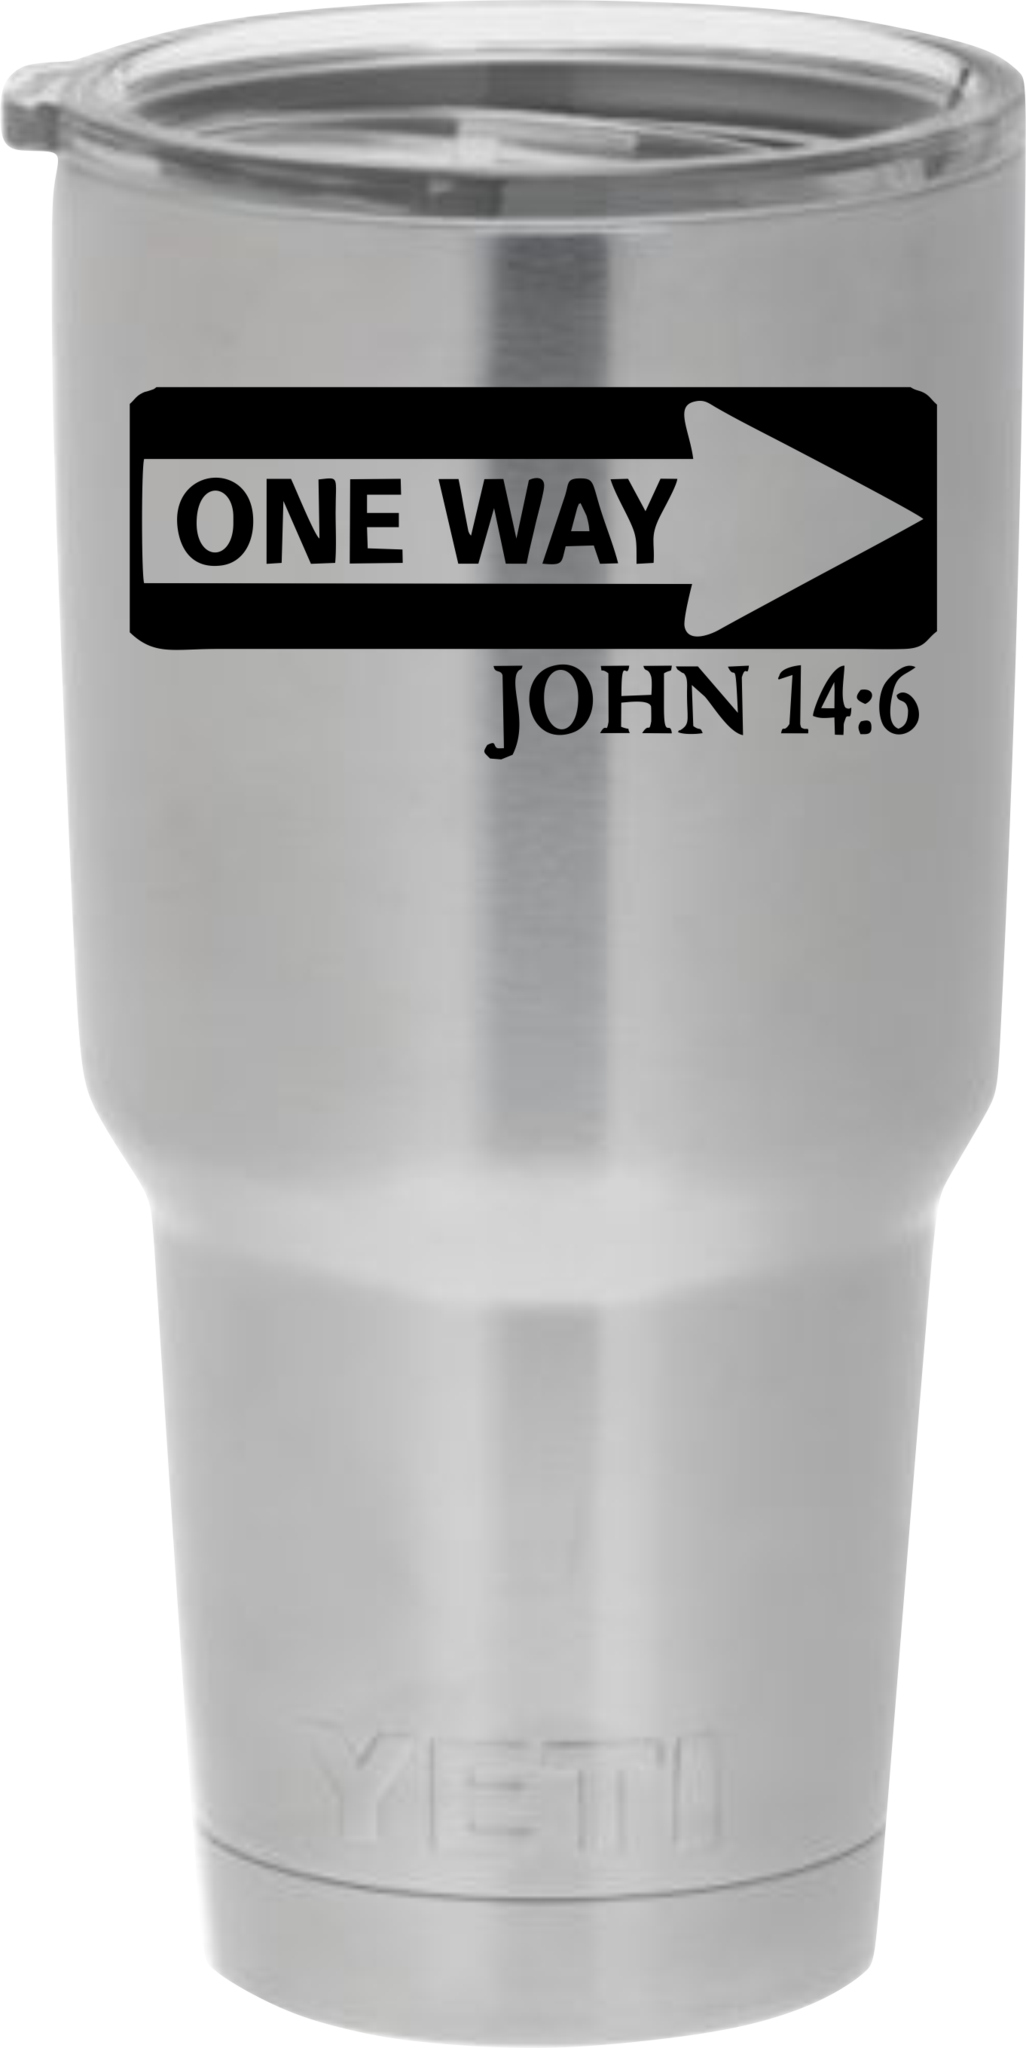 Transparent decals plastic cup. One way john decal